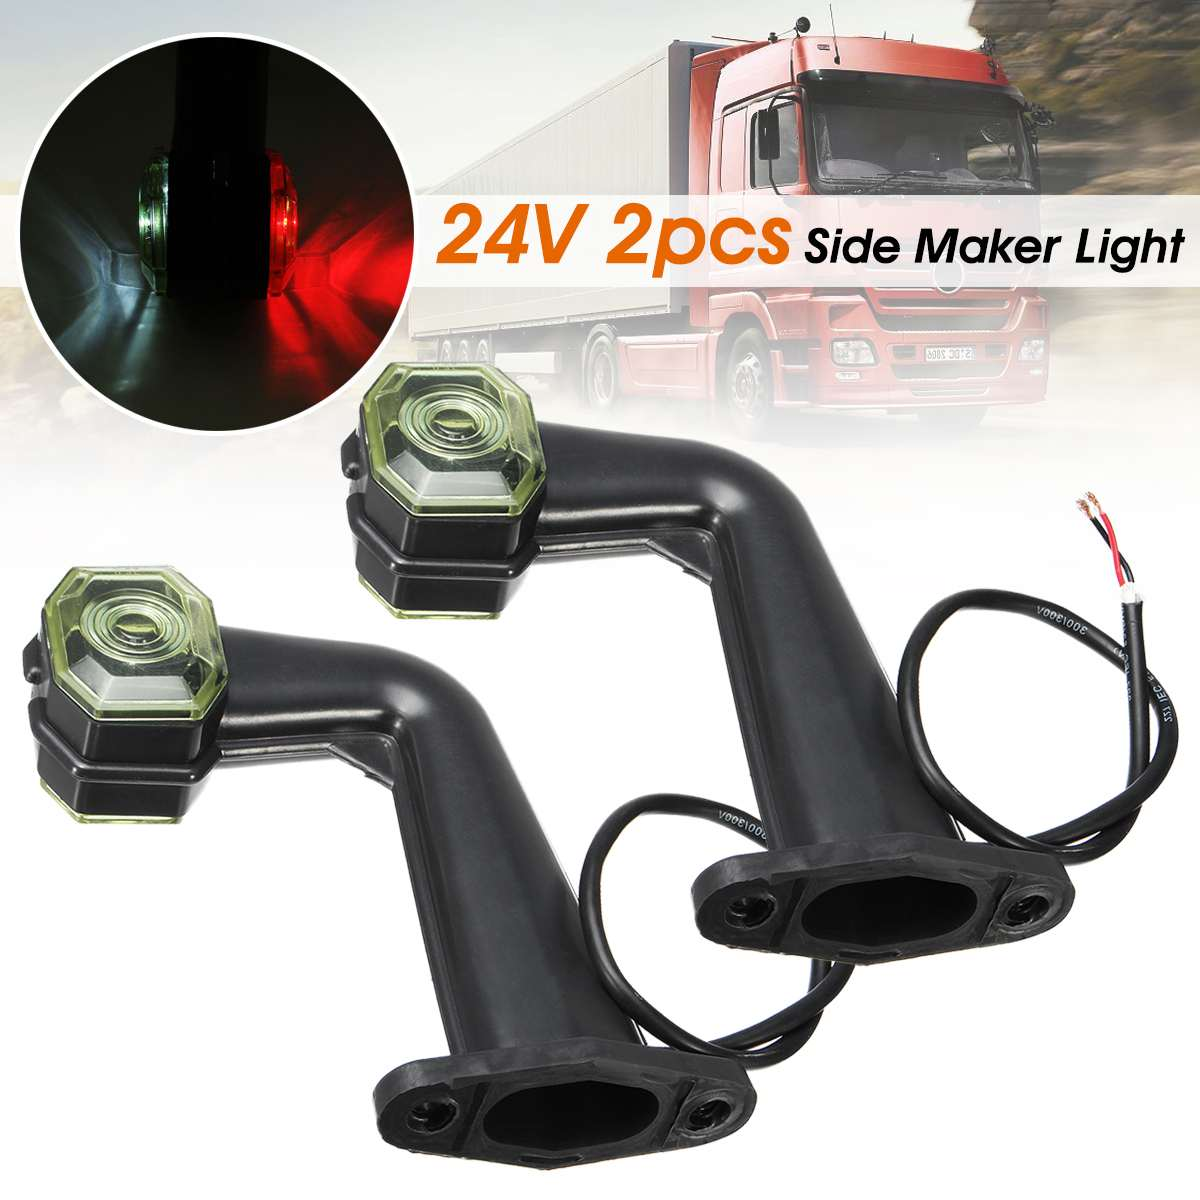 Pair 2 <font><b>LED</b></font> <font><b>24V</b></font> <font><b>Truck</b></font> Elbow Side Marker Light Indicator <font><b>Lamp</b></font> Side Marked <font><b>Lamp</b></font> For Car <font><b>Truck</b></font> Trailer Lorry image